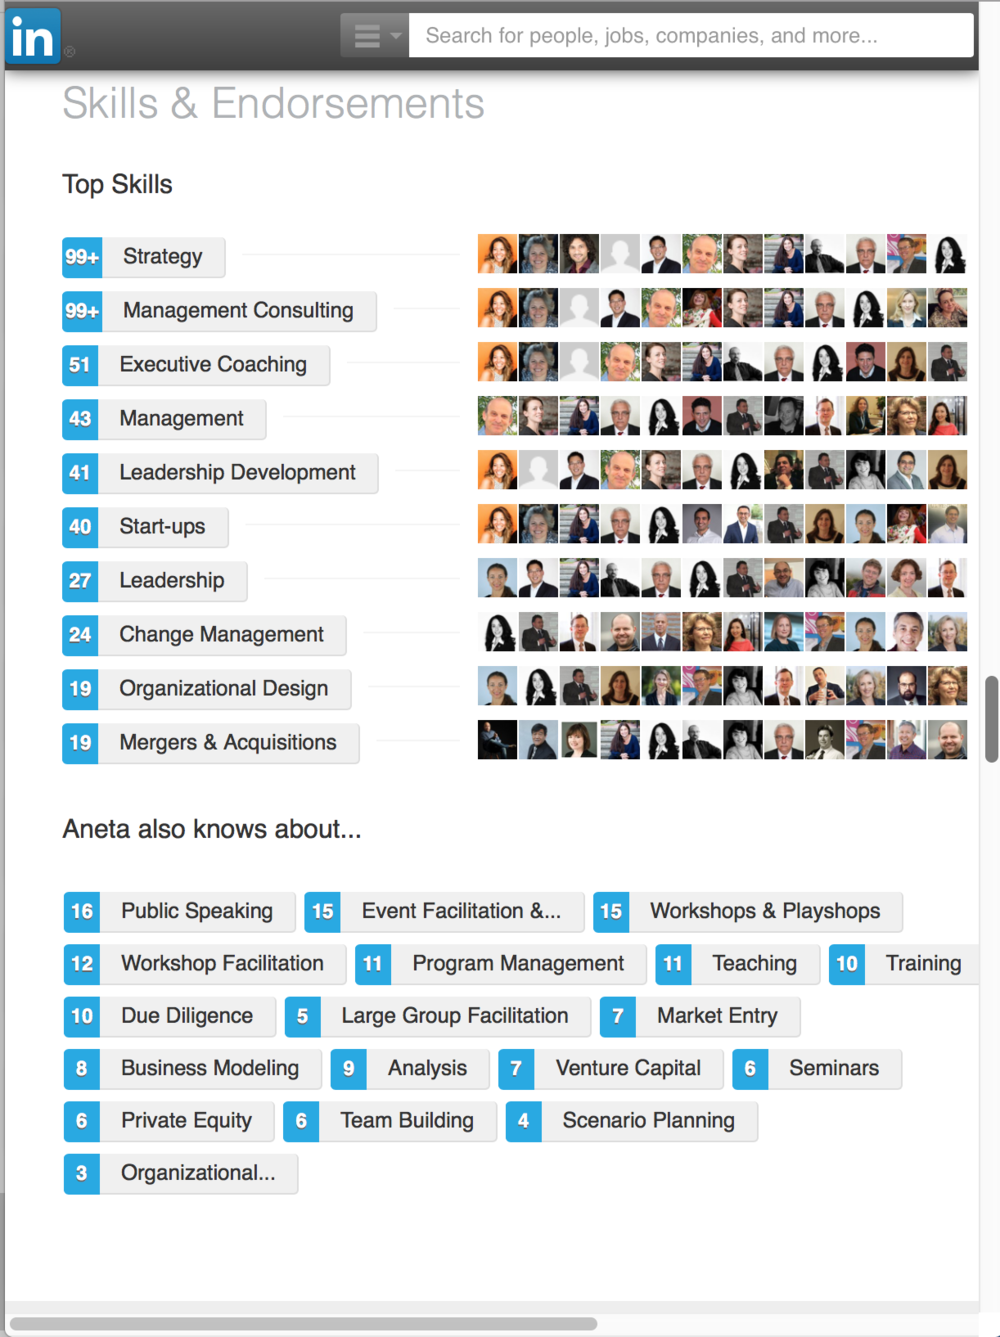 Aneta Key is most endorsed on LinkedIn for Strategy, Management consulting, Executive coaching, Leadership Development, Start-ups, Change Management, M&A, and Org design